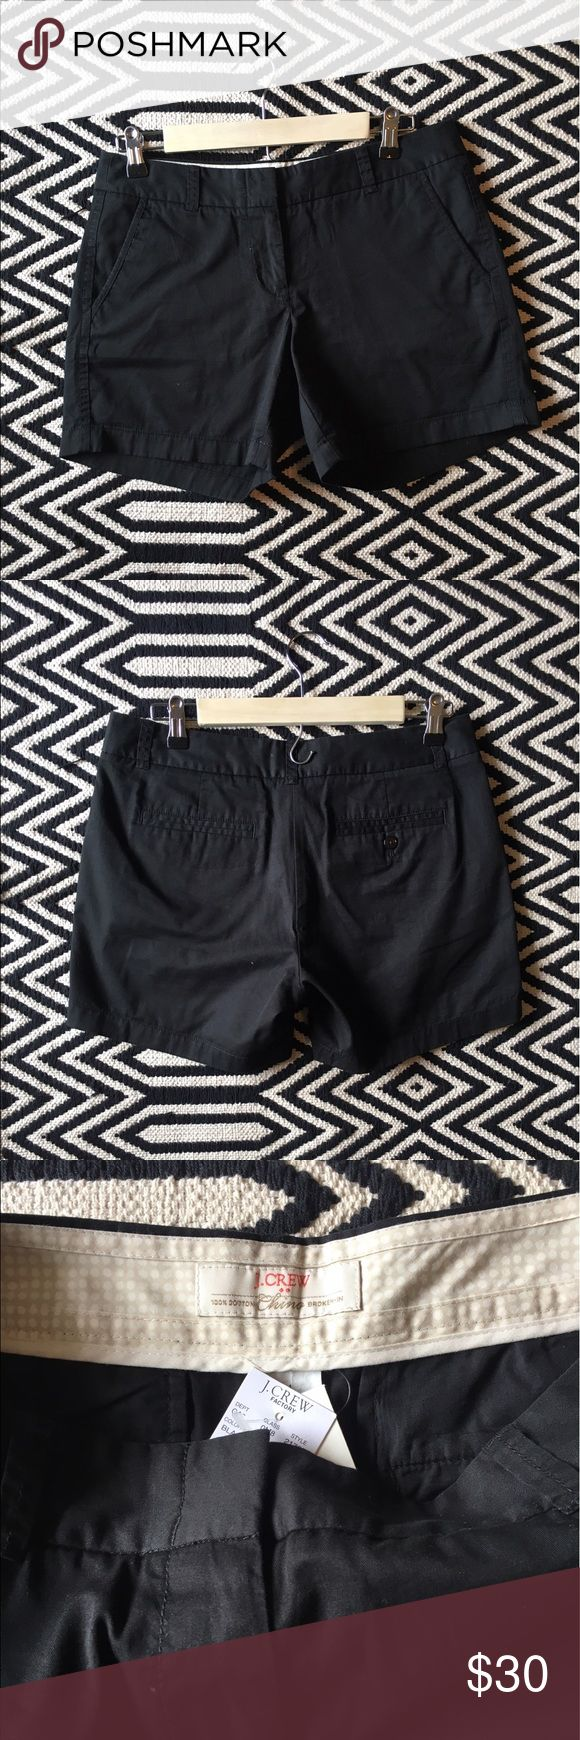 J. Crew black chino broken-in shorts NWT. J. Crew factory chino broken-in shorts. Color: black. Size 4. 100% cotton. Measurements pictured. J. Crew Factory Shorts